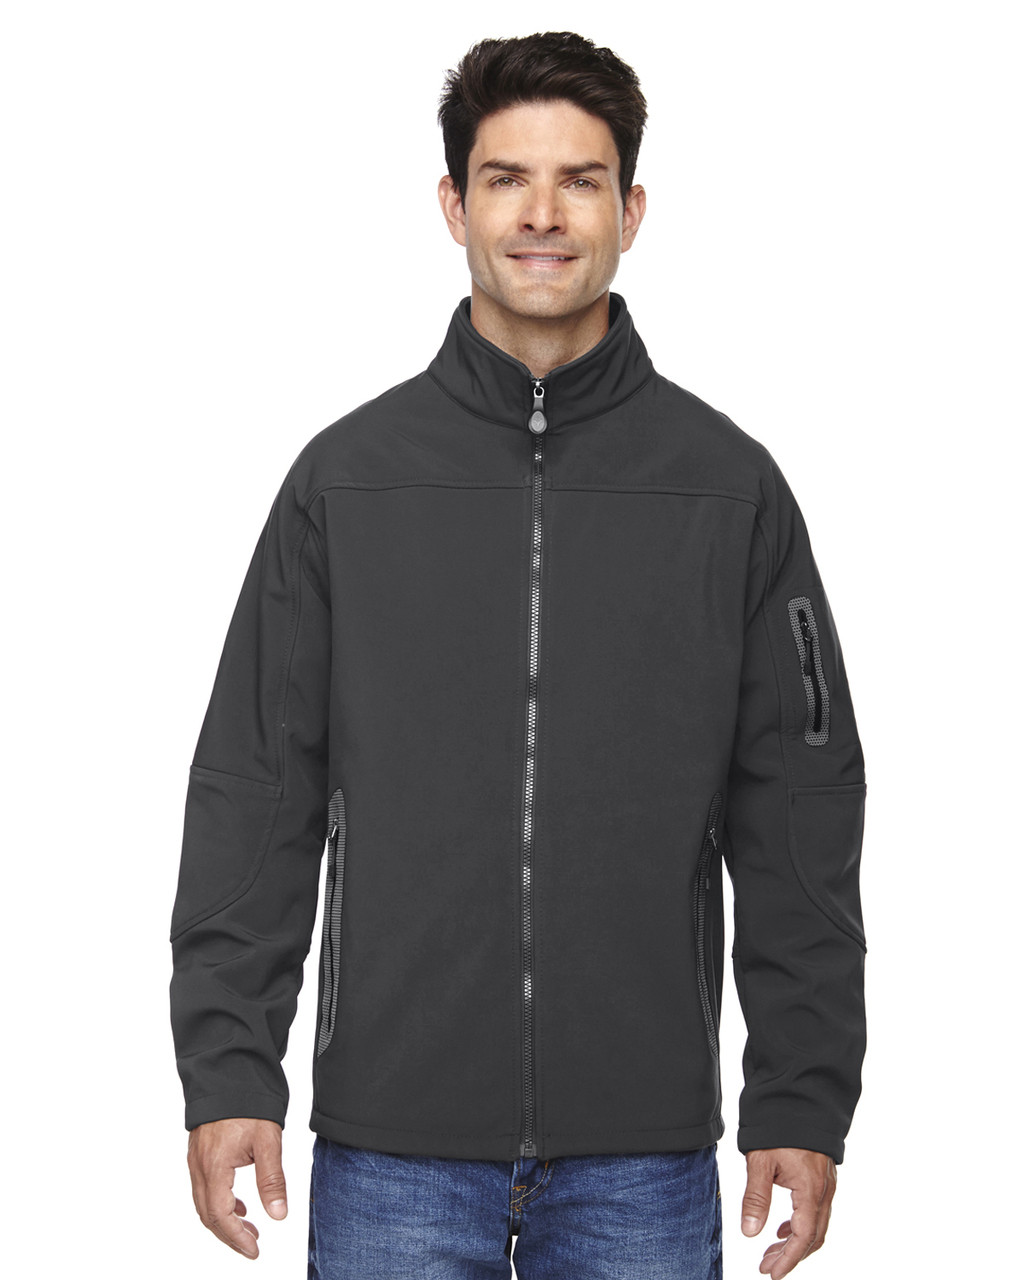 Graphite - 88138 North End Men's Soft Shell Technical Jacket | Blankclothing.ca